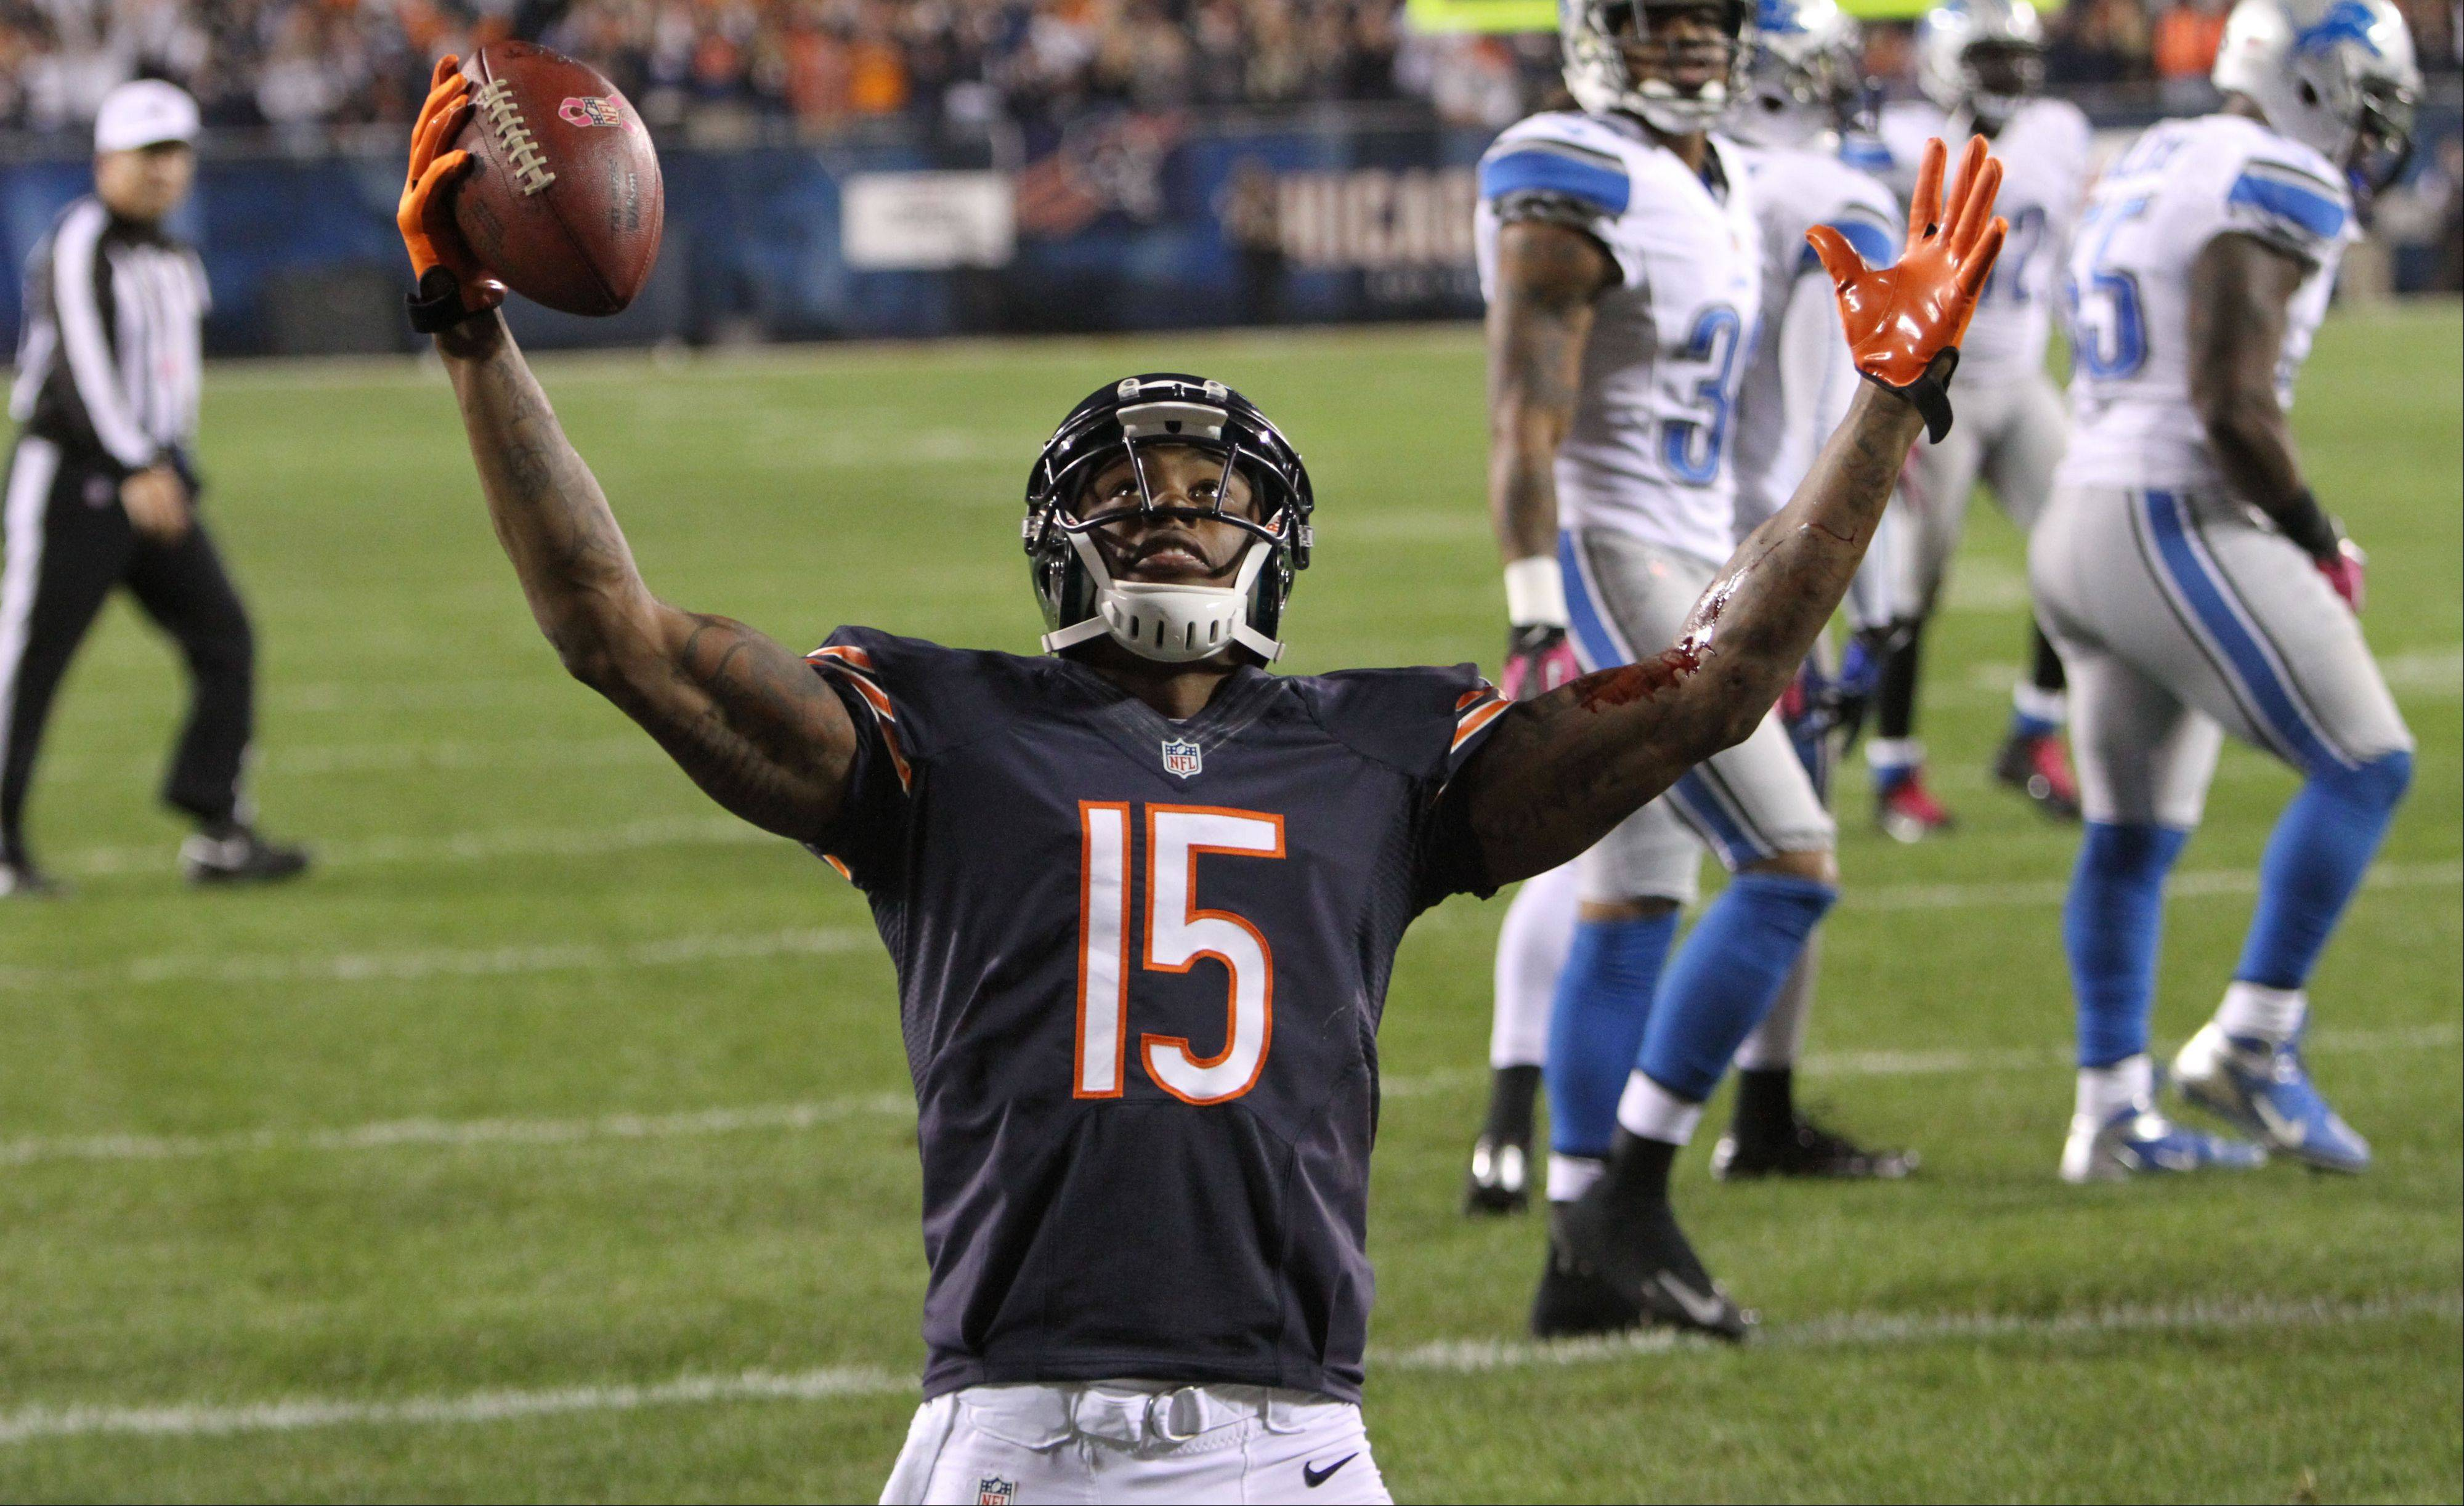 Chicago Bears wide receiver Brandon Marshall celebrates a first quarter touchdown.